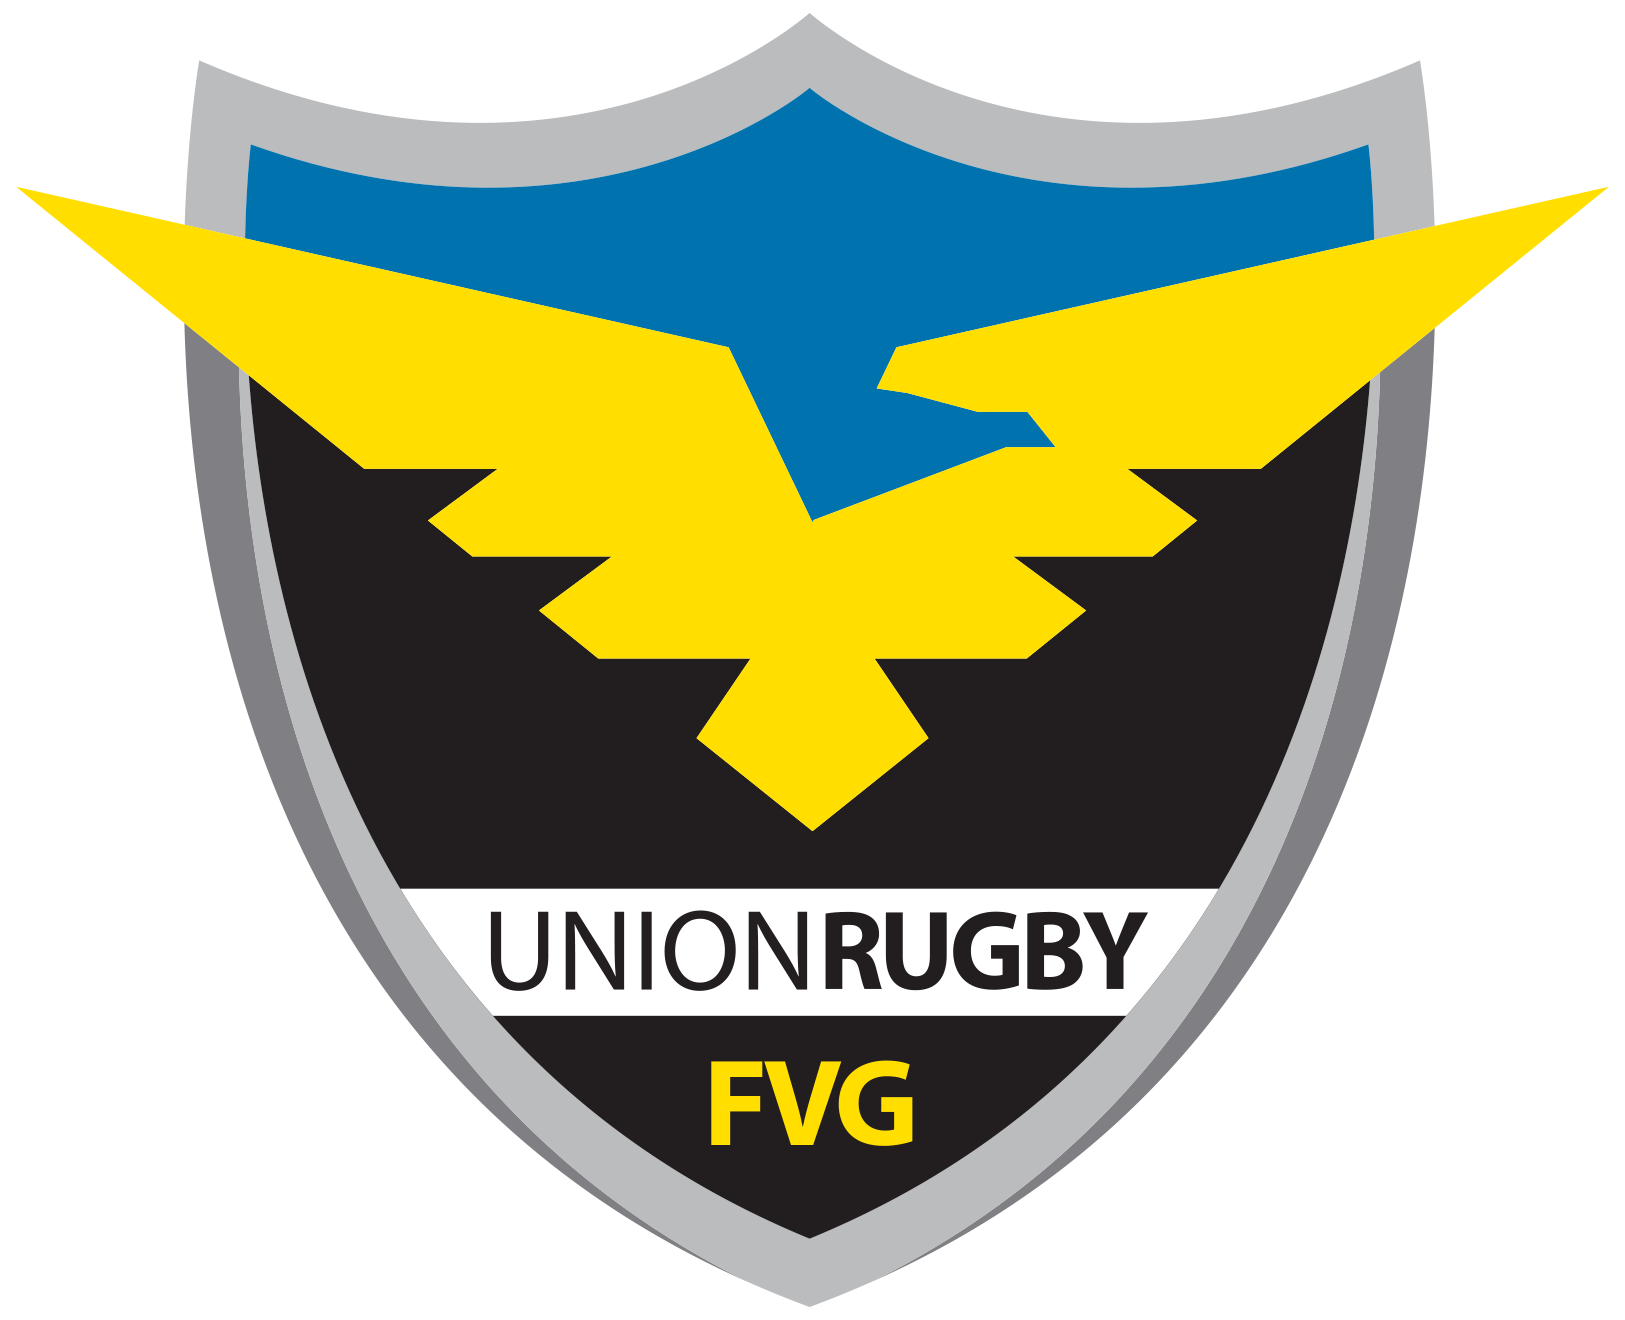 Rugby Udine Union FVG/1